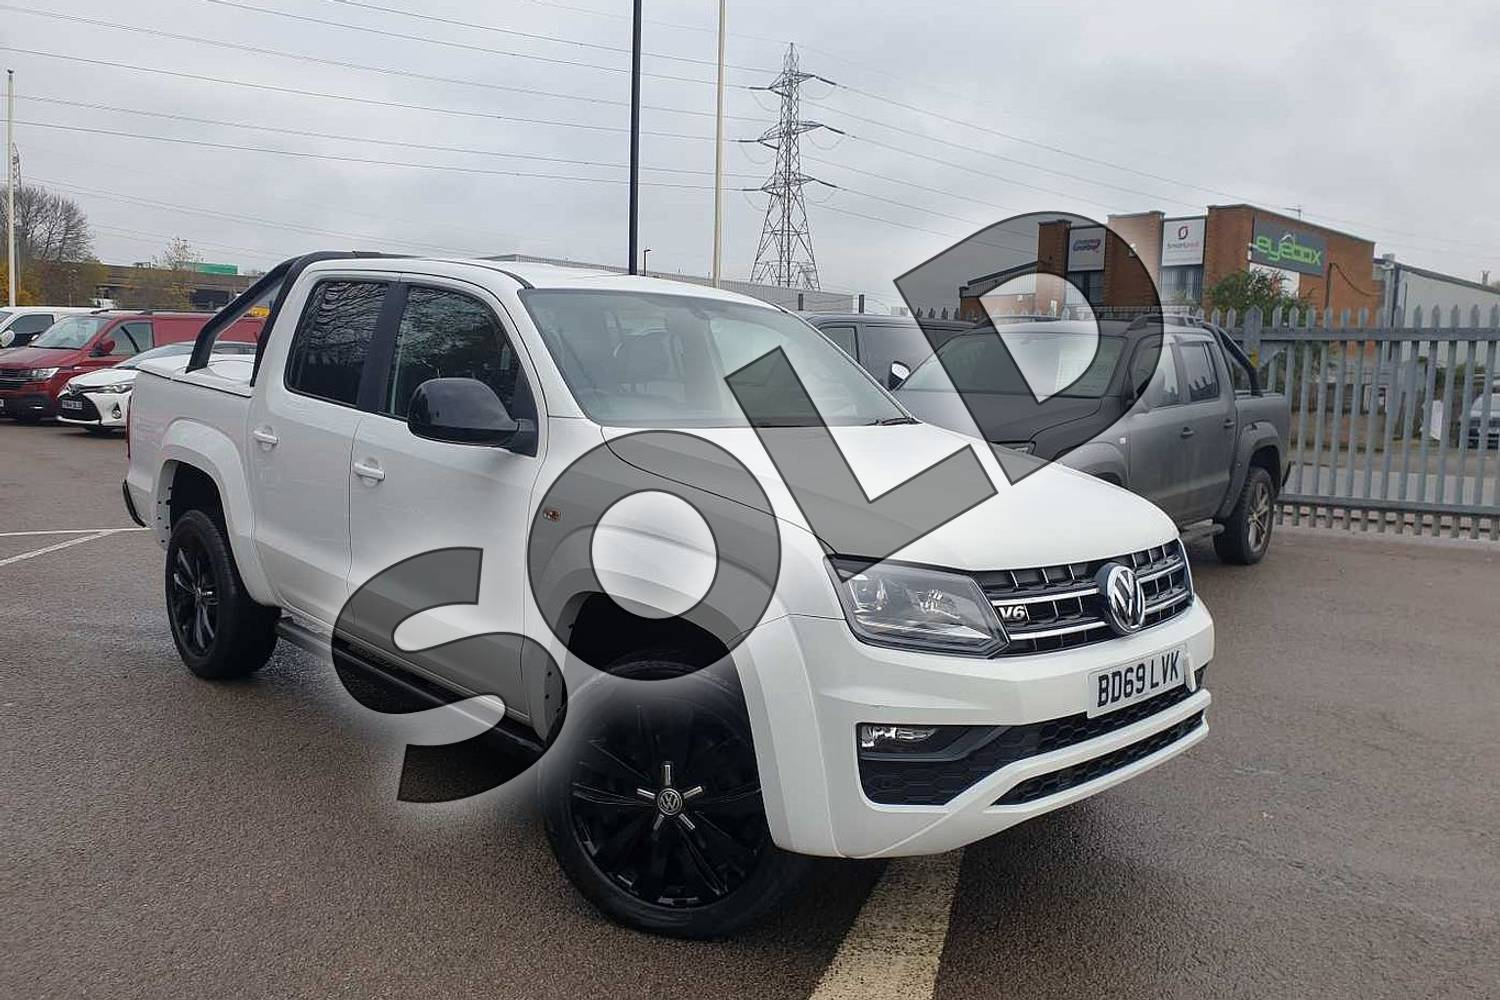 2019 Volkswagen Amarok A33 Special Editions D/Cab Pick Up Black Ed 3.0 V6 TDI 258 BMT 4M Auto in White at Listers Volkswagen Van Centre Coventry